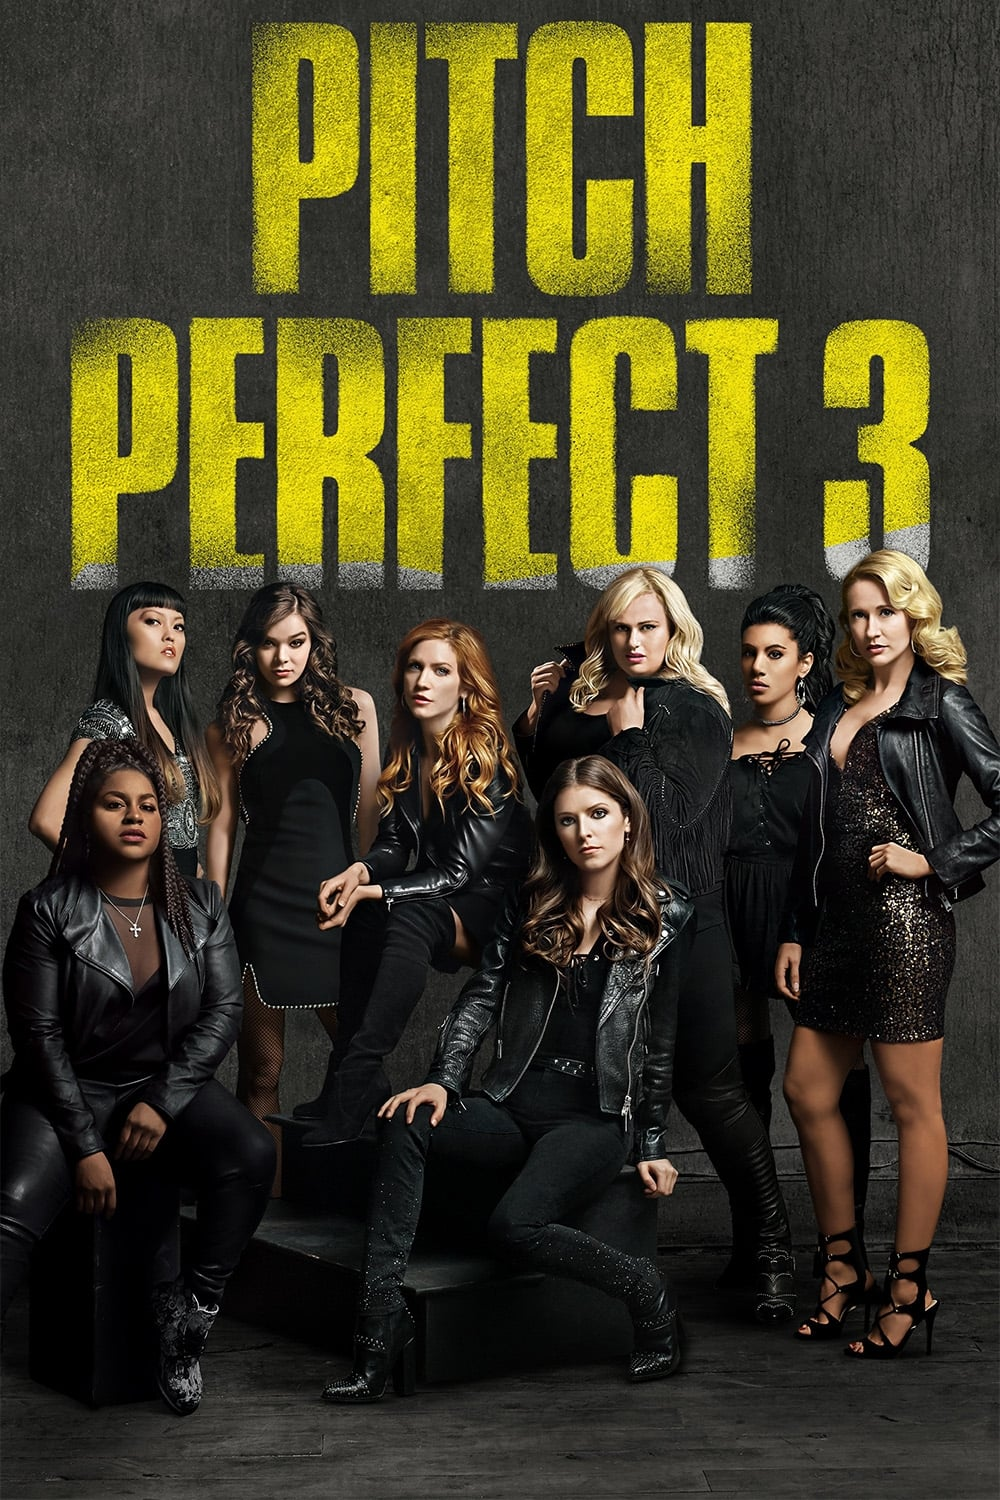 pitch perfect stream kkiste